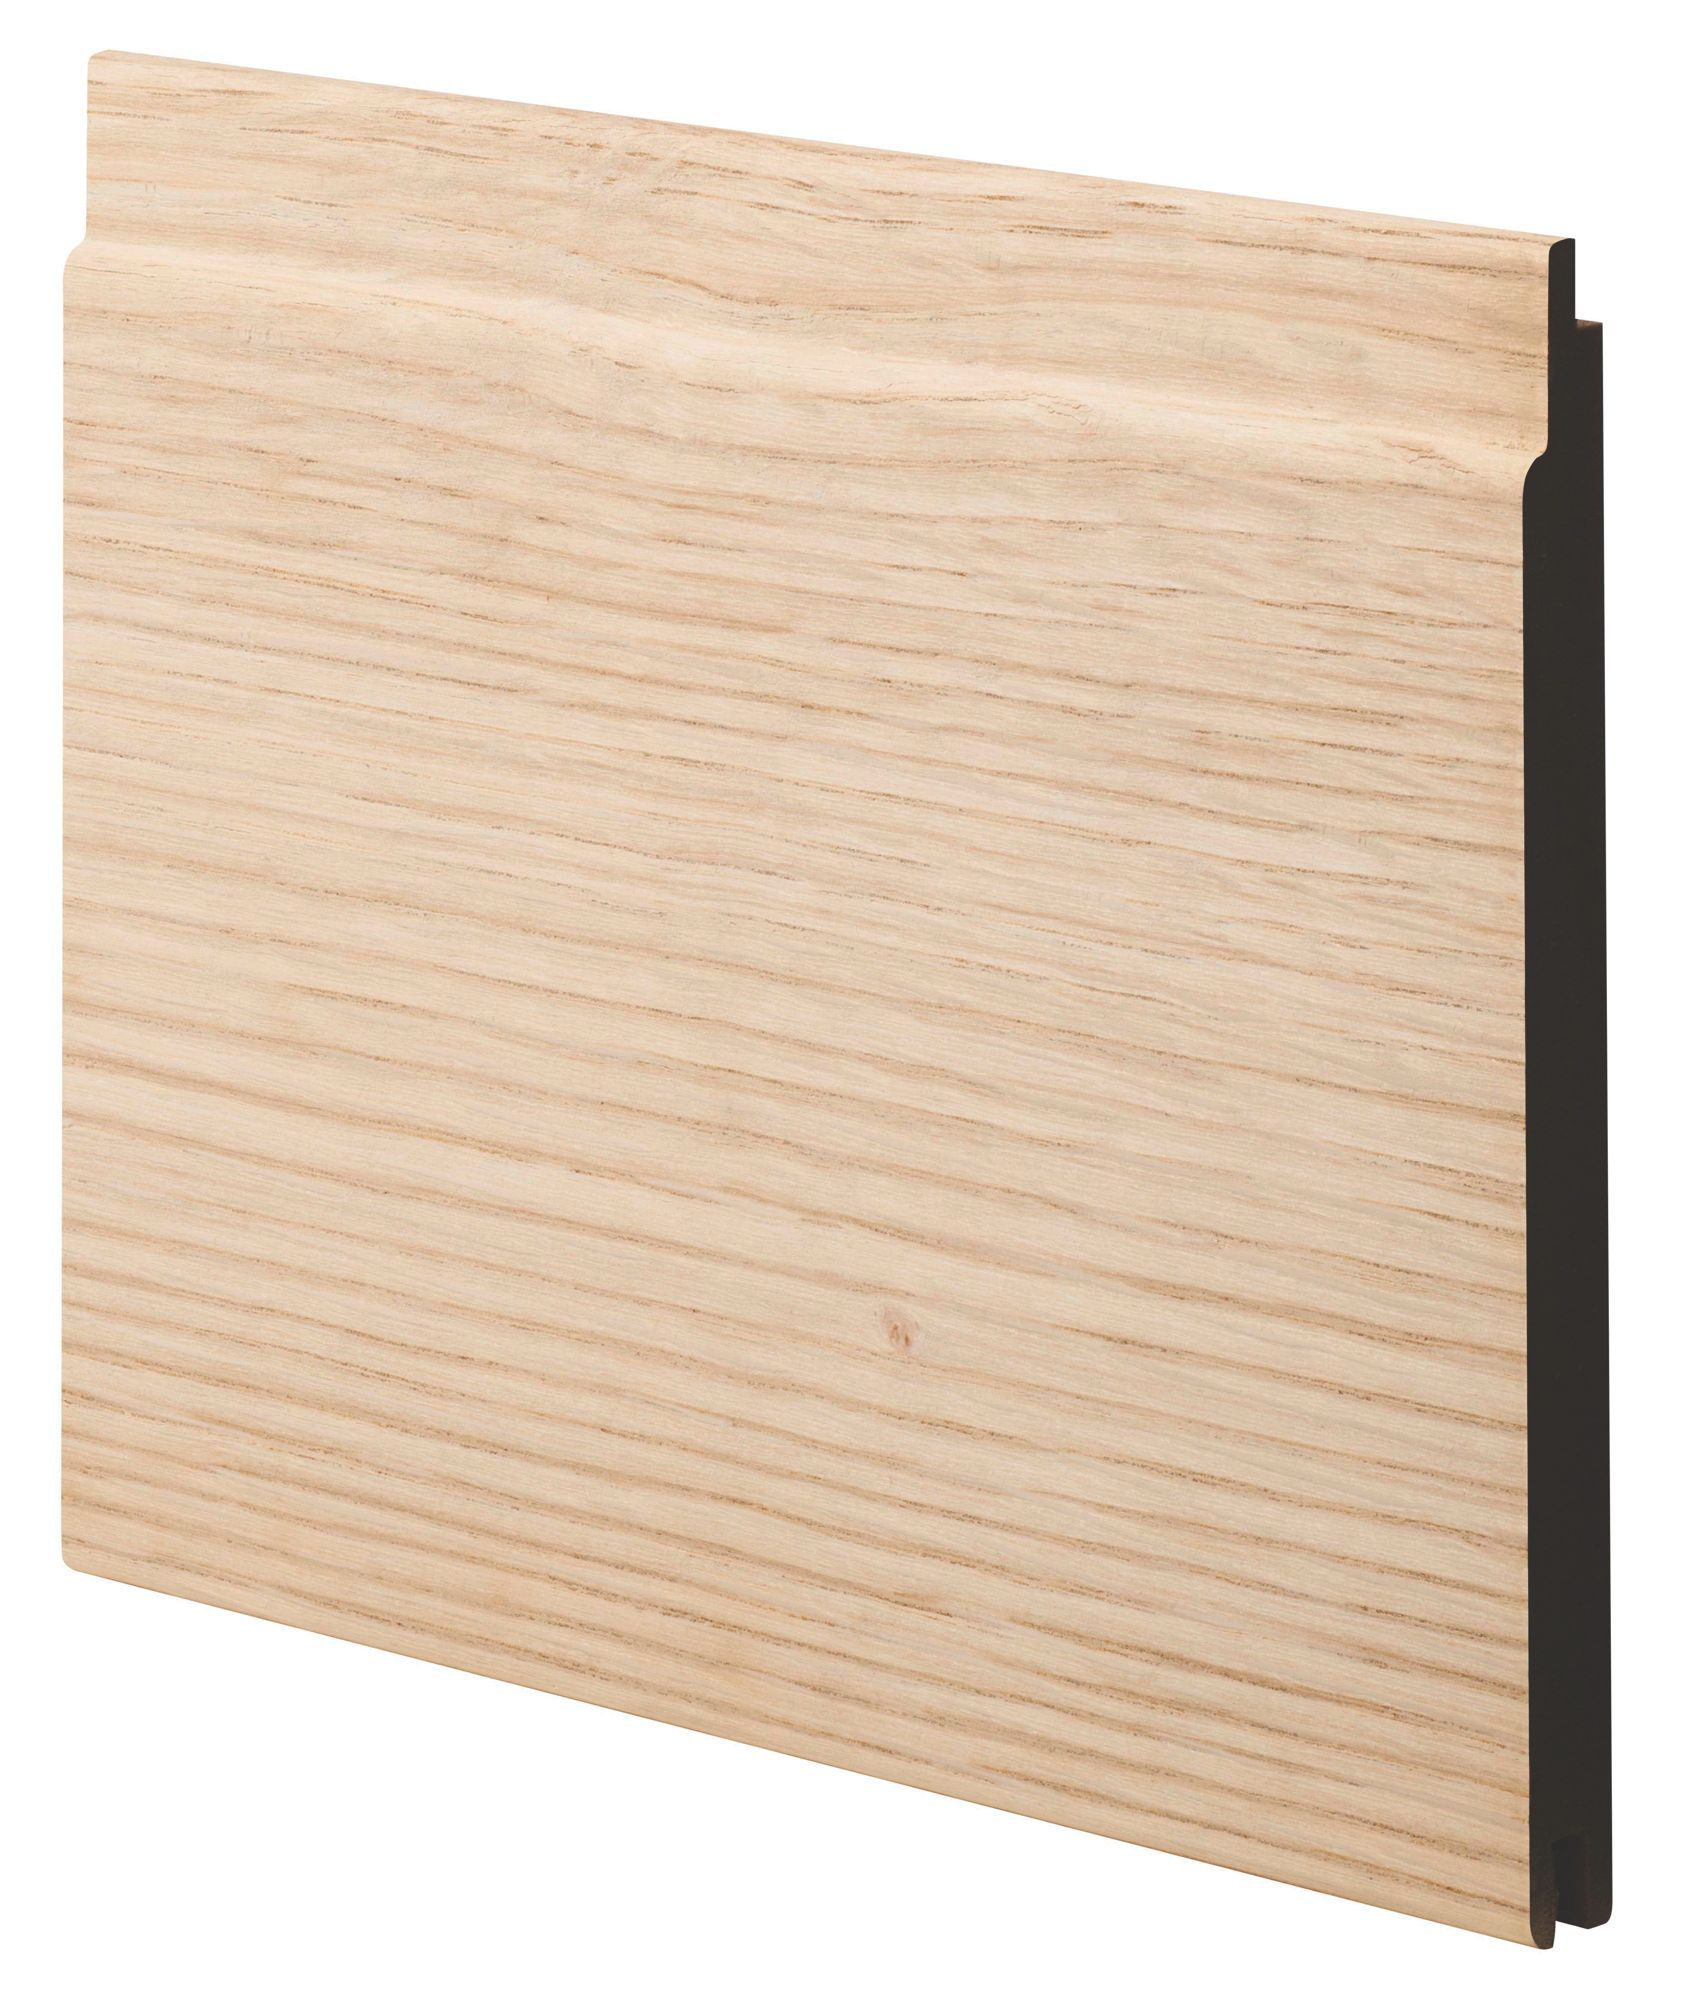 Timber Cladding Veneered Cladding T 12mm W 144mm L